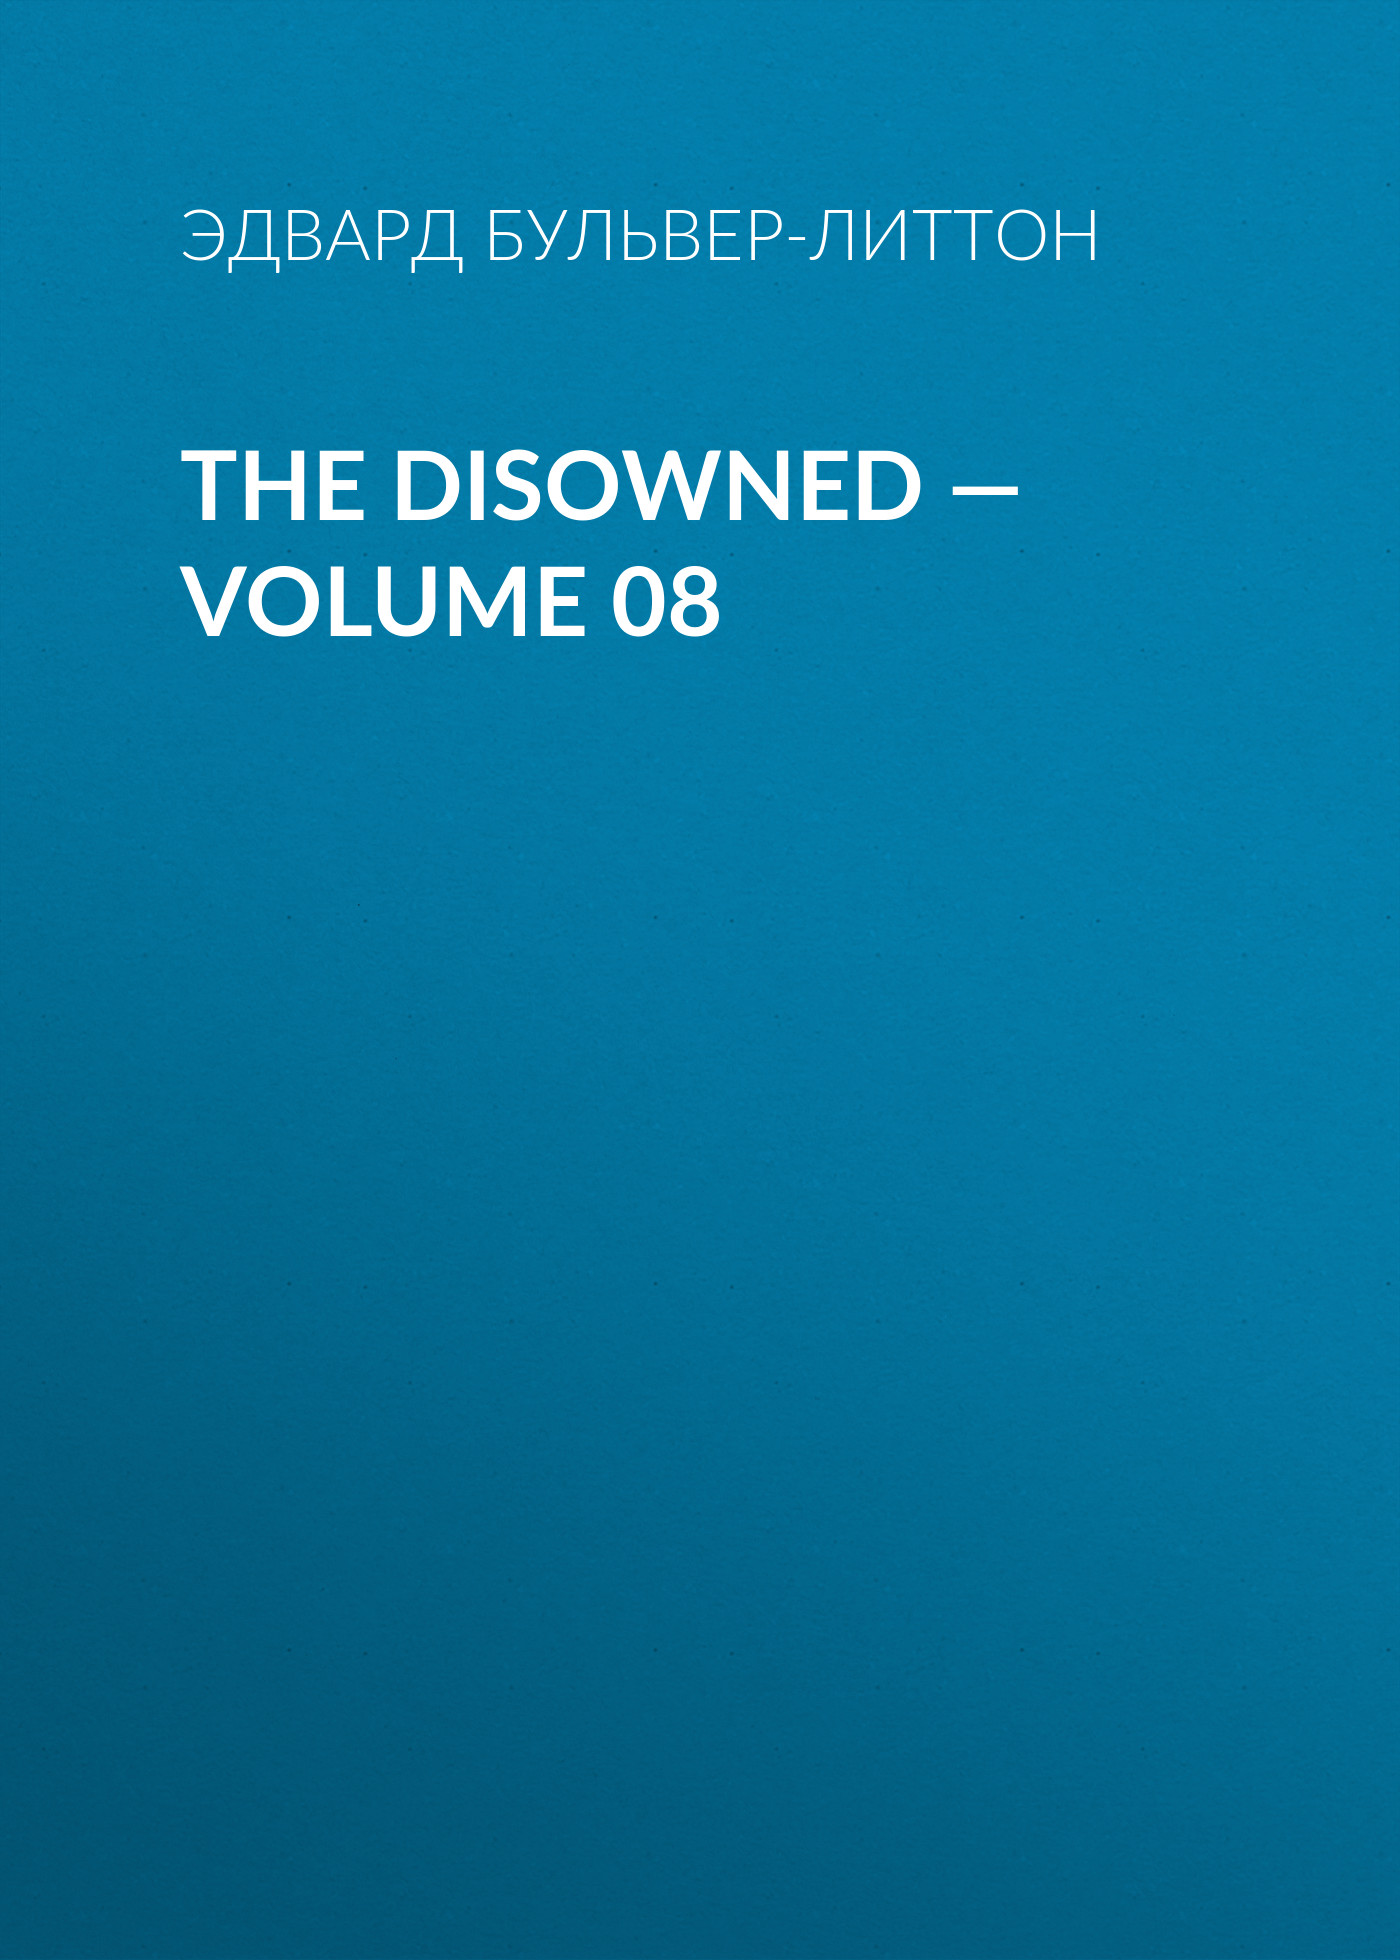 The Disowned — Volume 08